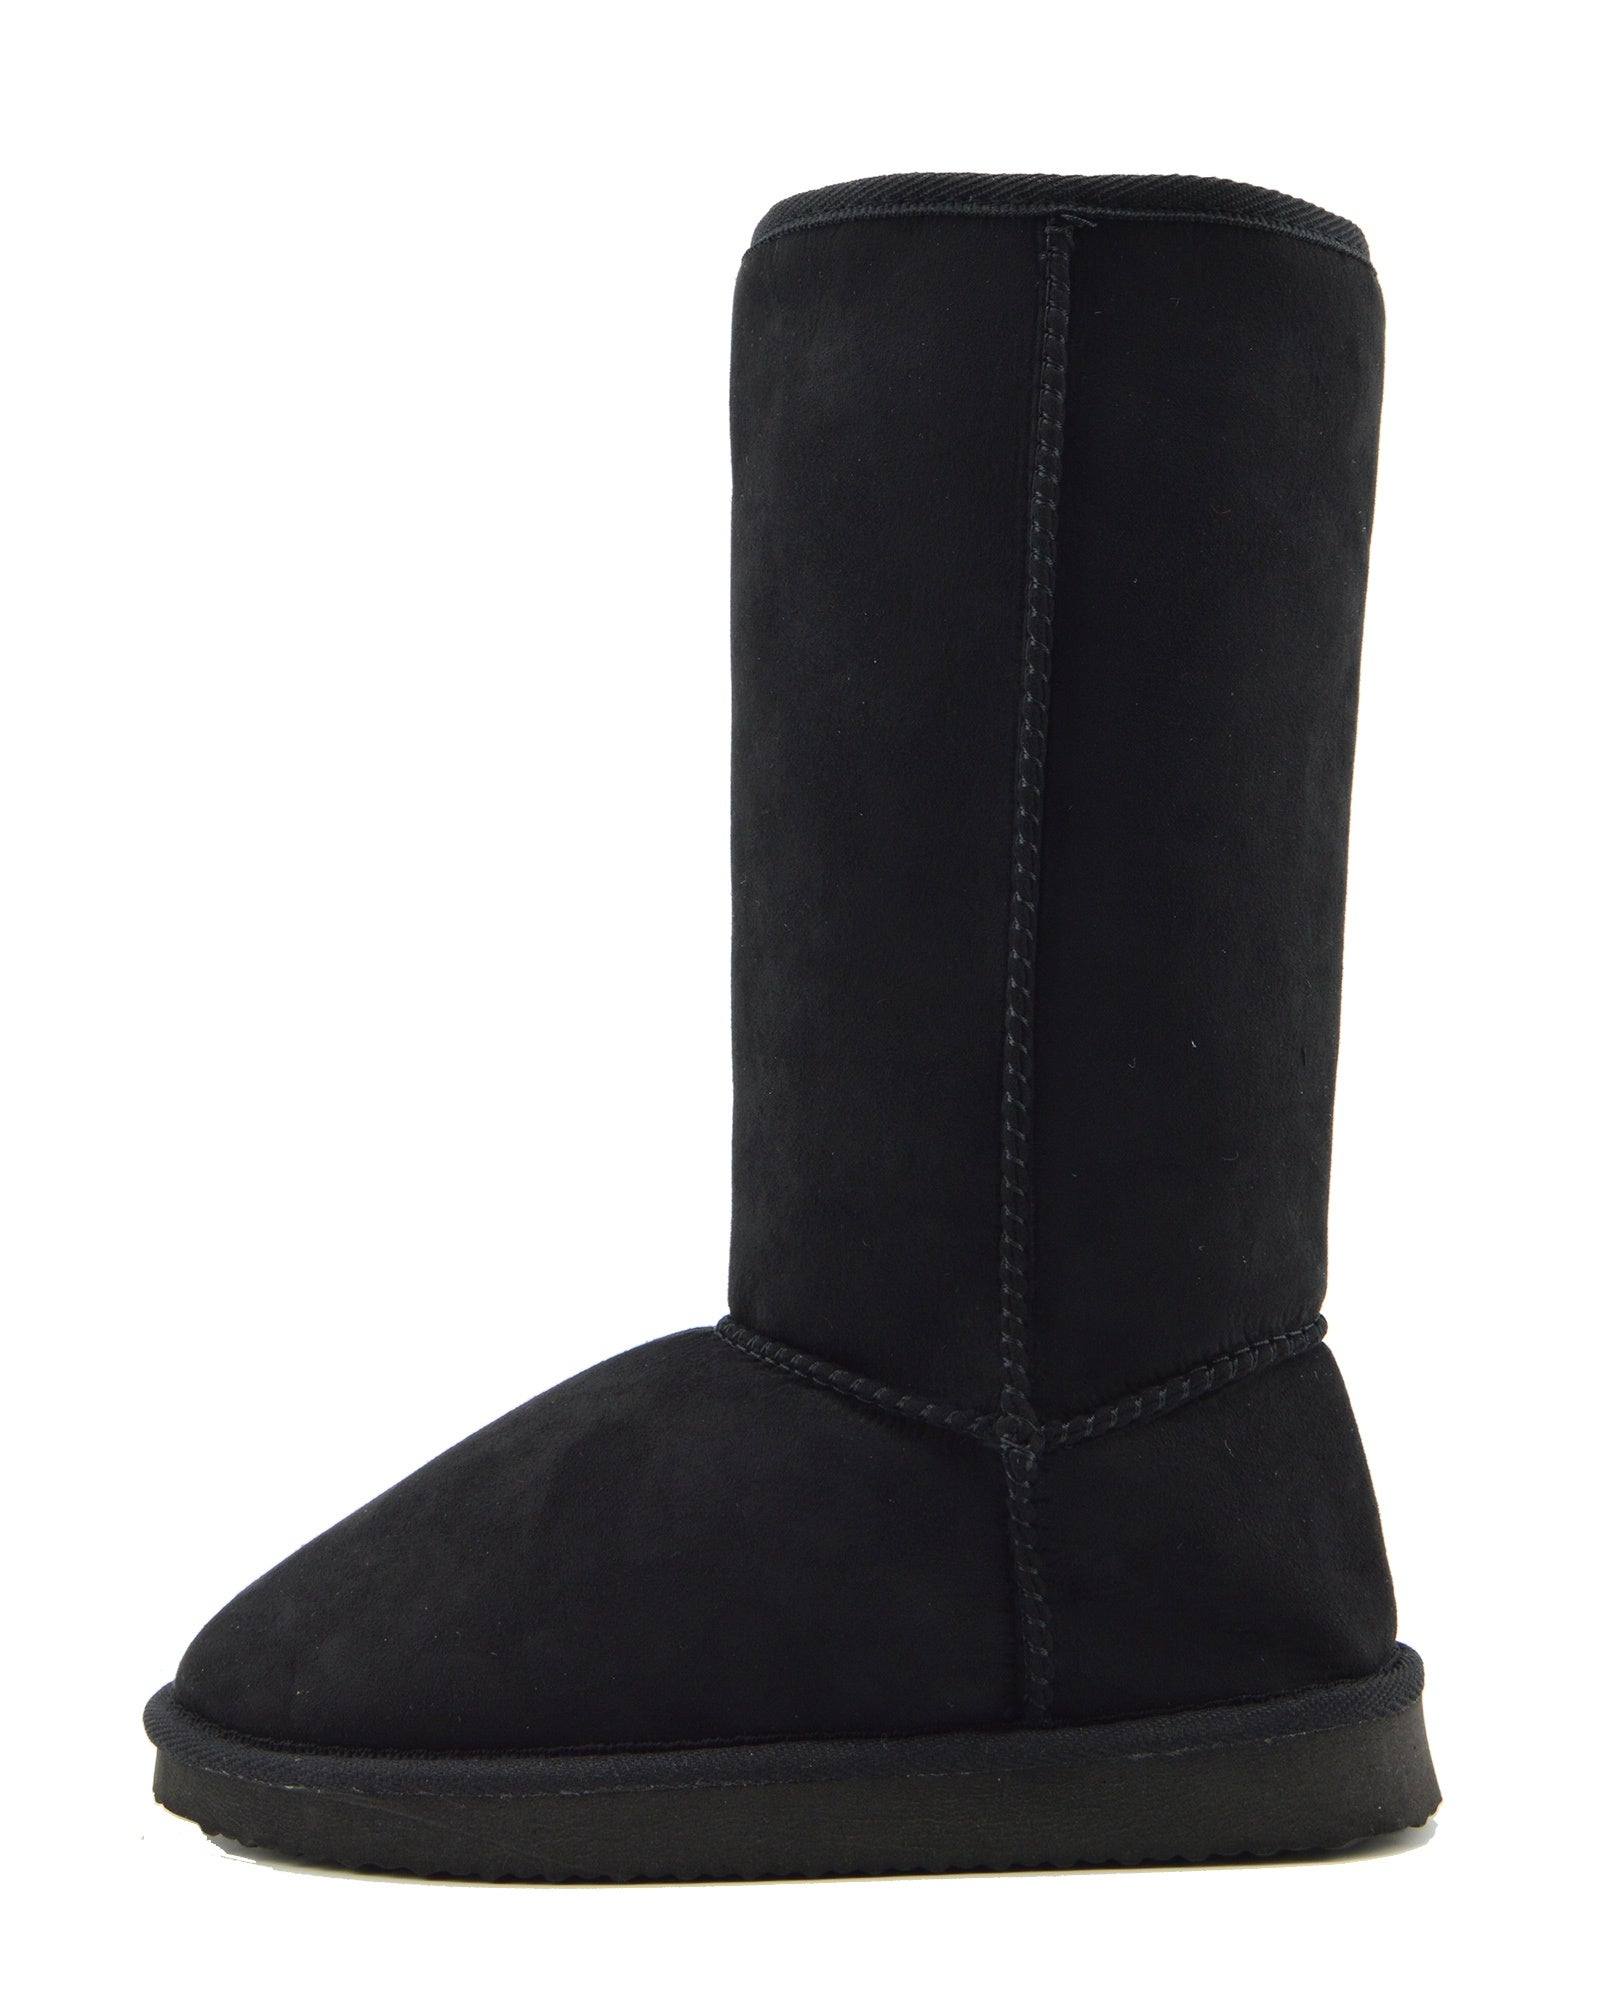 6661b8d62 Holly Mid Calf Faux sheepskin Lined Winter Boots -Black - Kickfootwear